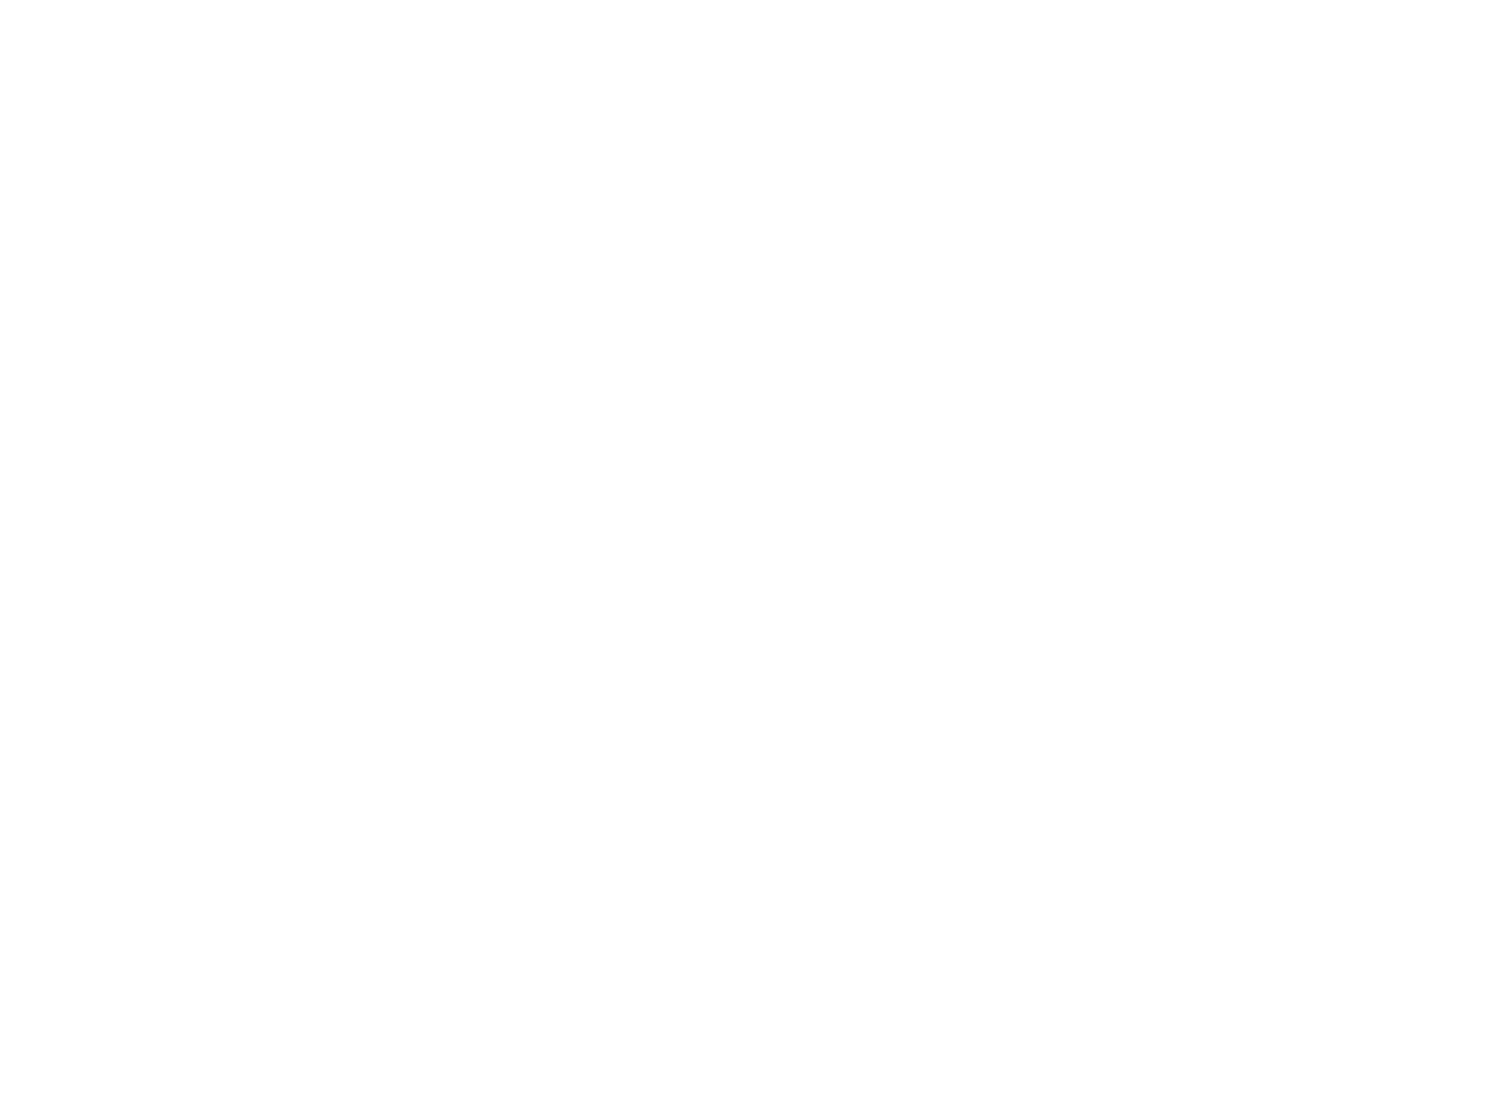 Guided Passage